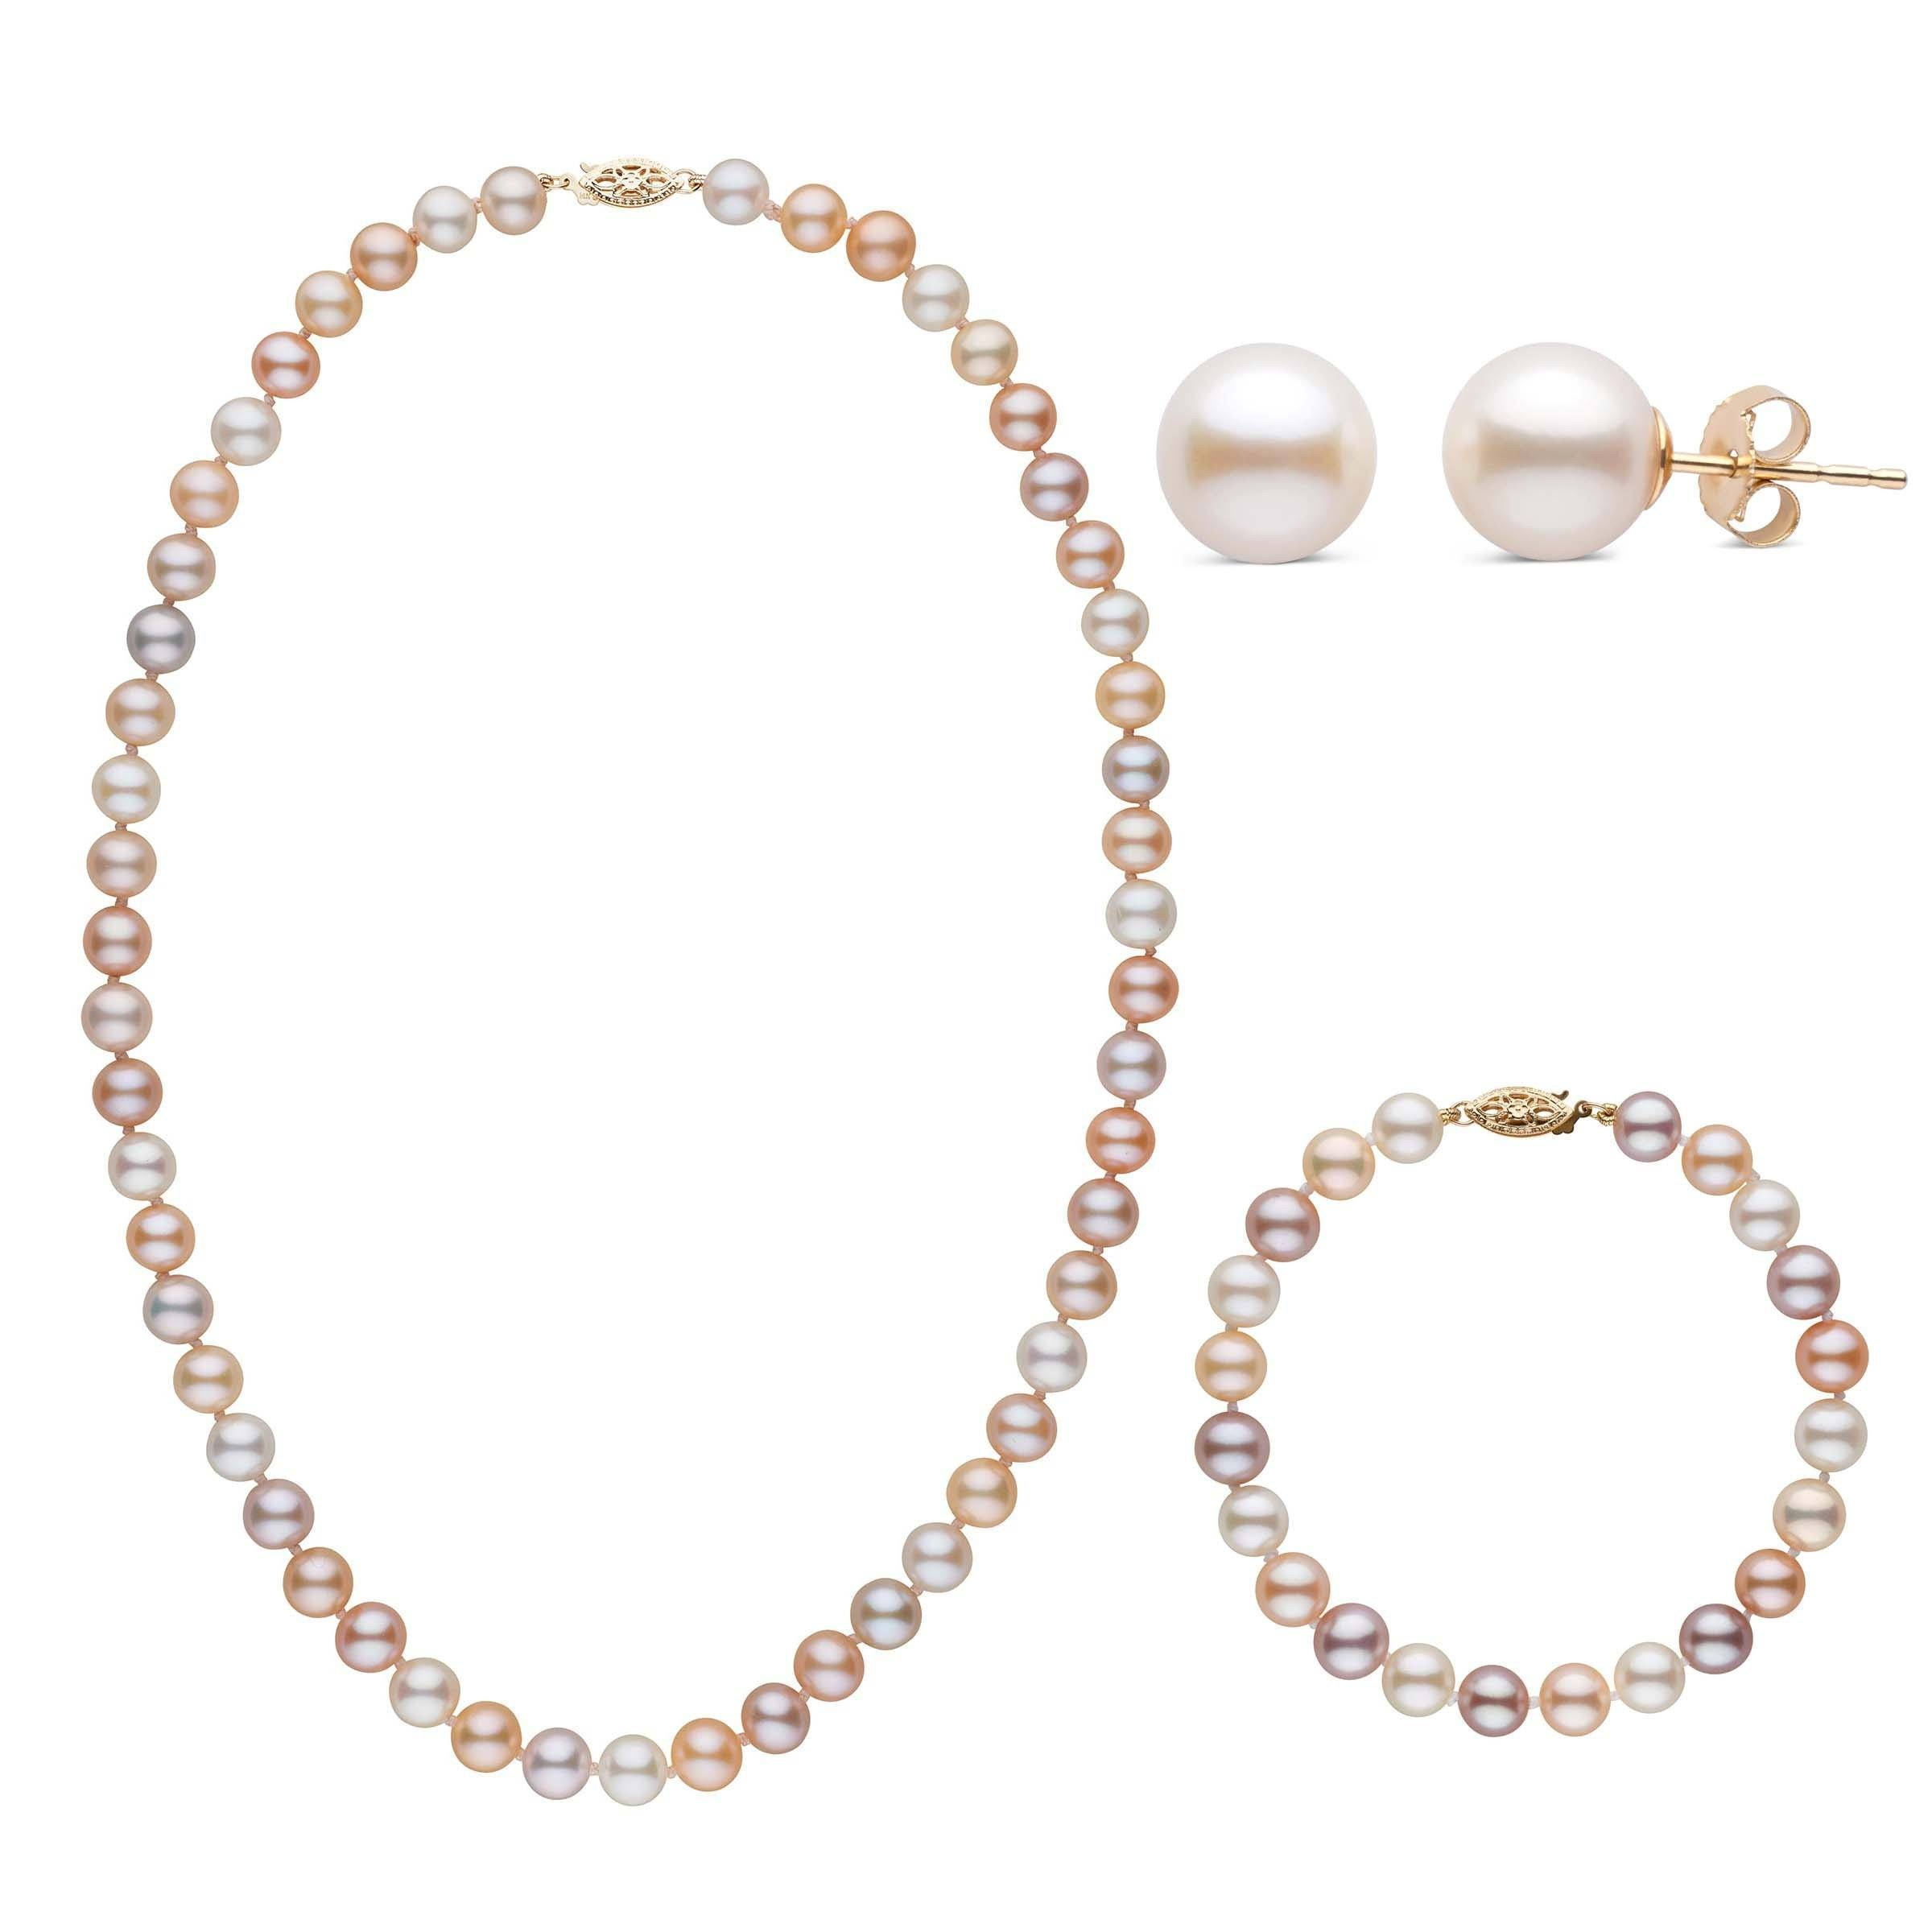 18 Inch 3 Piece Set of 7.5-8.0 mm AAA Multicolor Freshwater Pearls